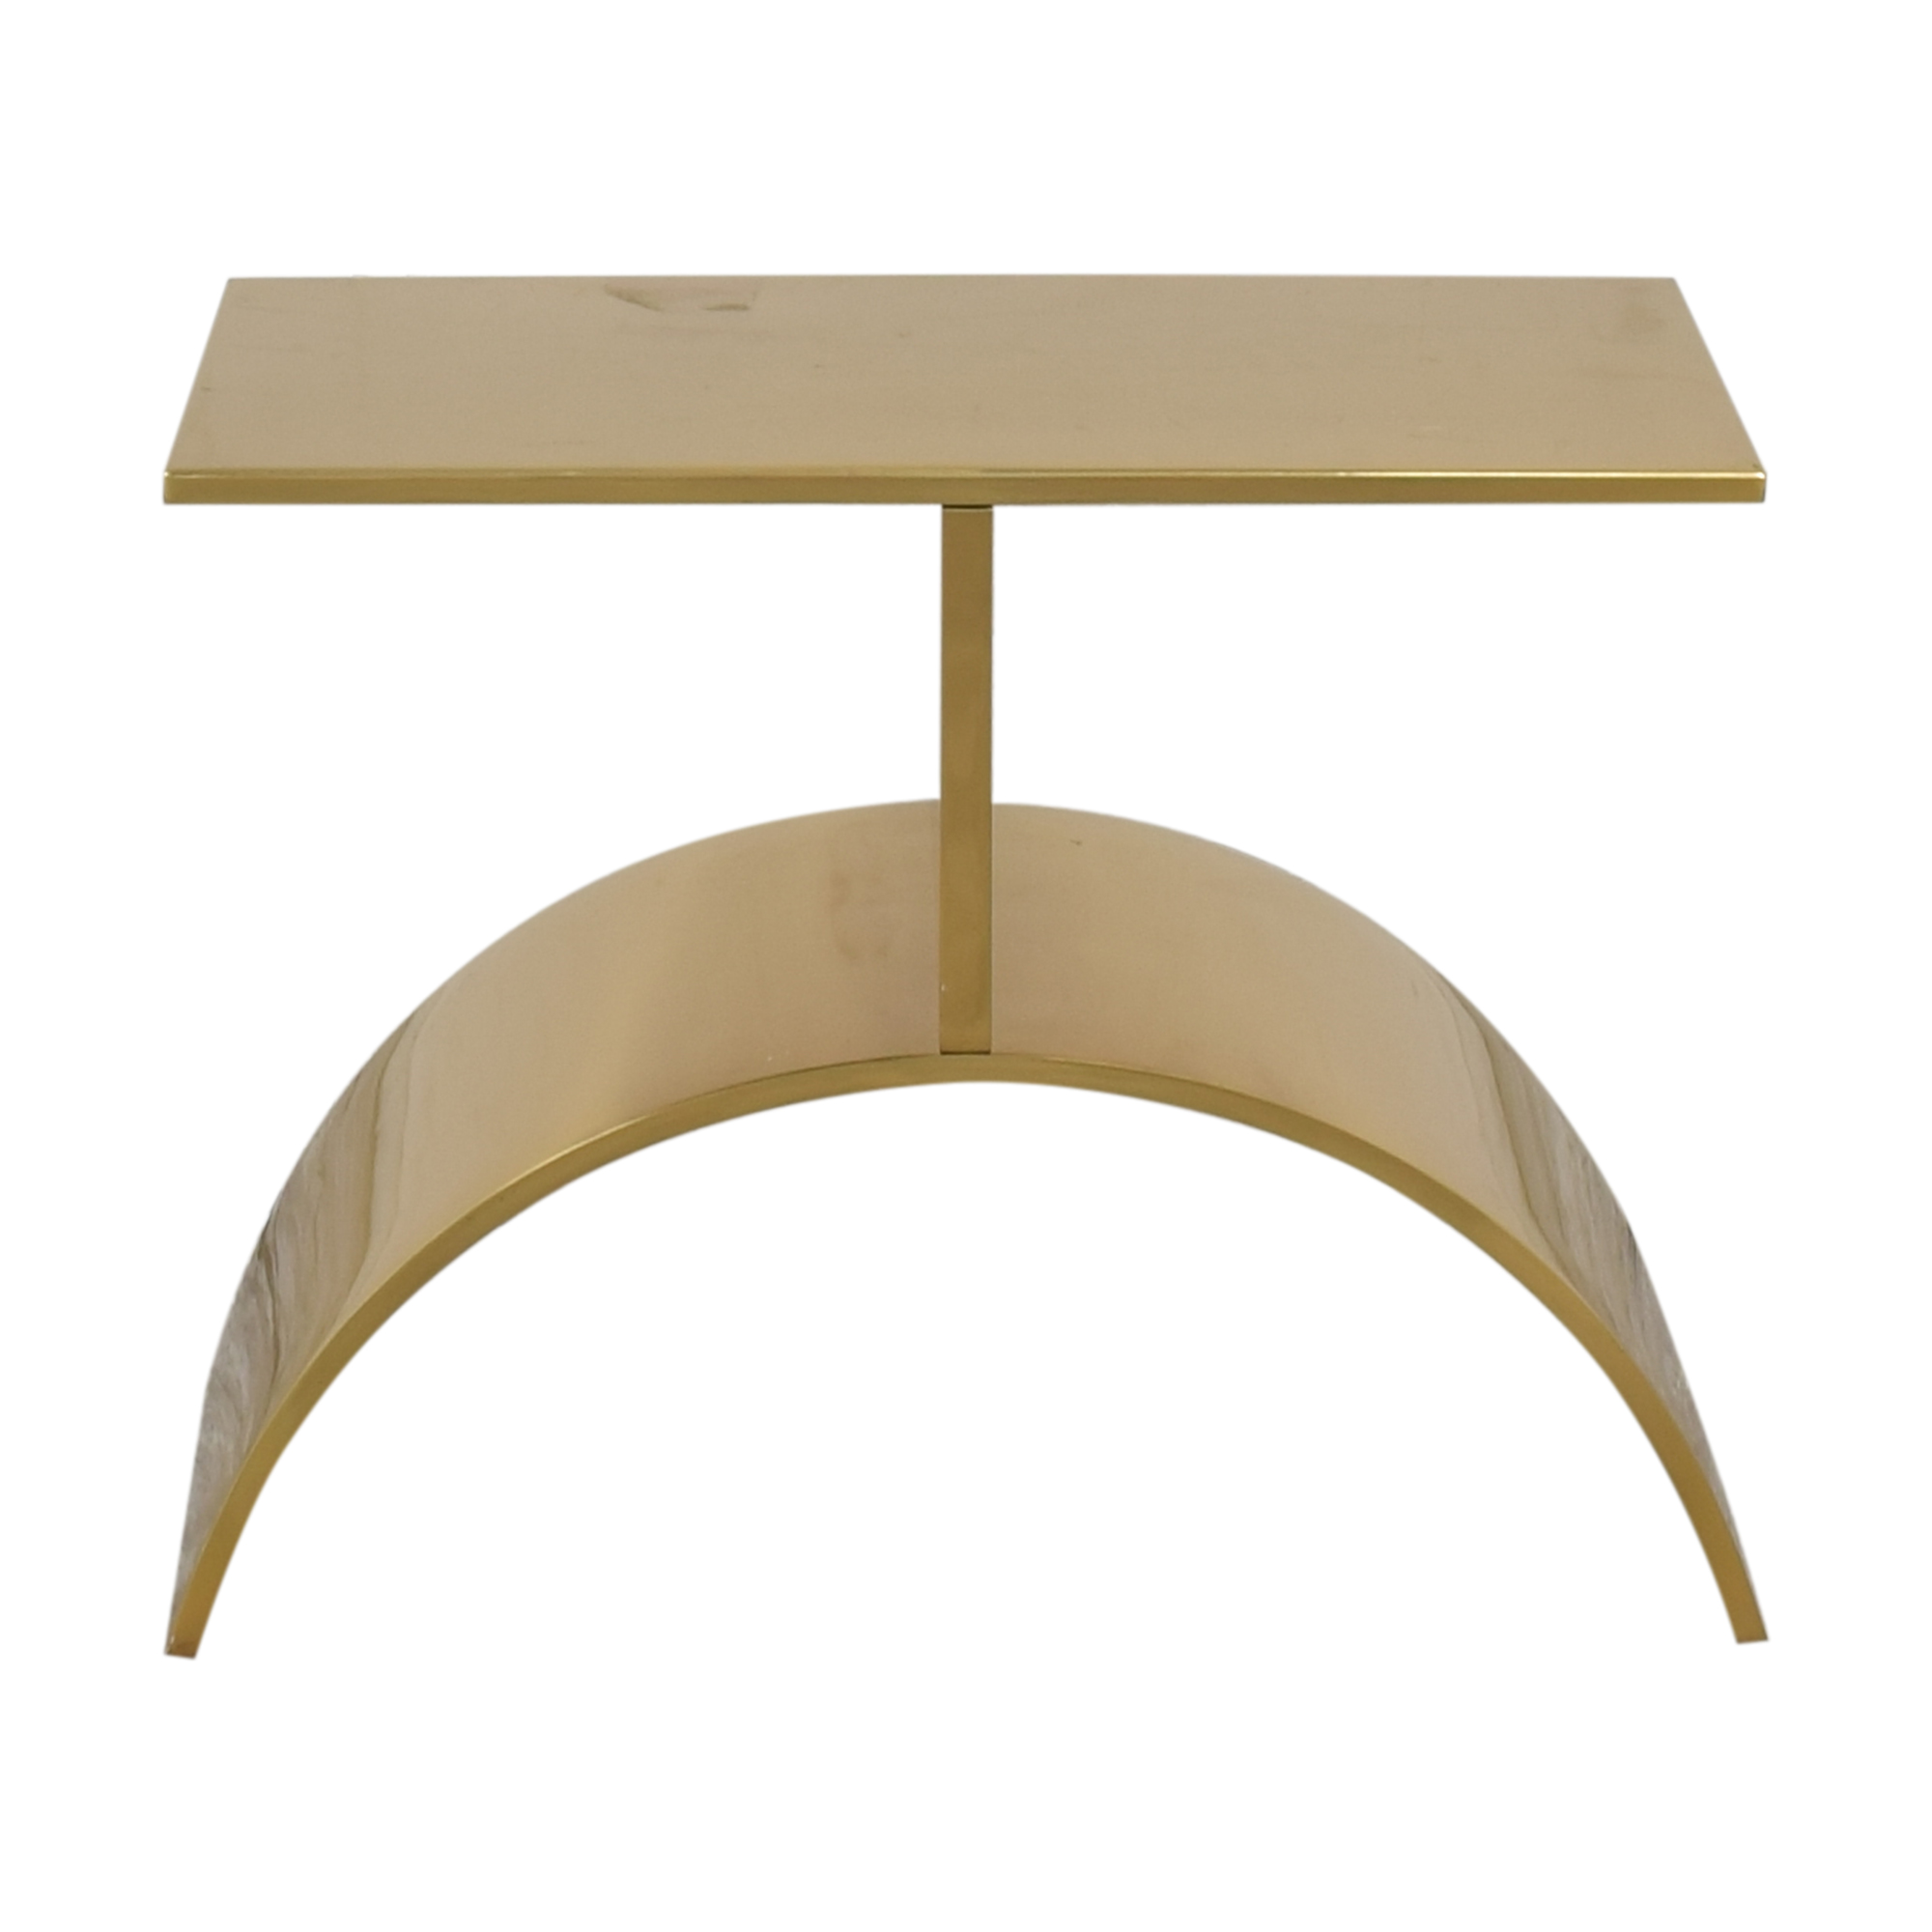 32 off cb2 cb2 curve gold side table tables